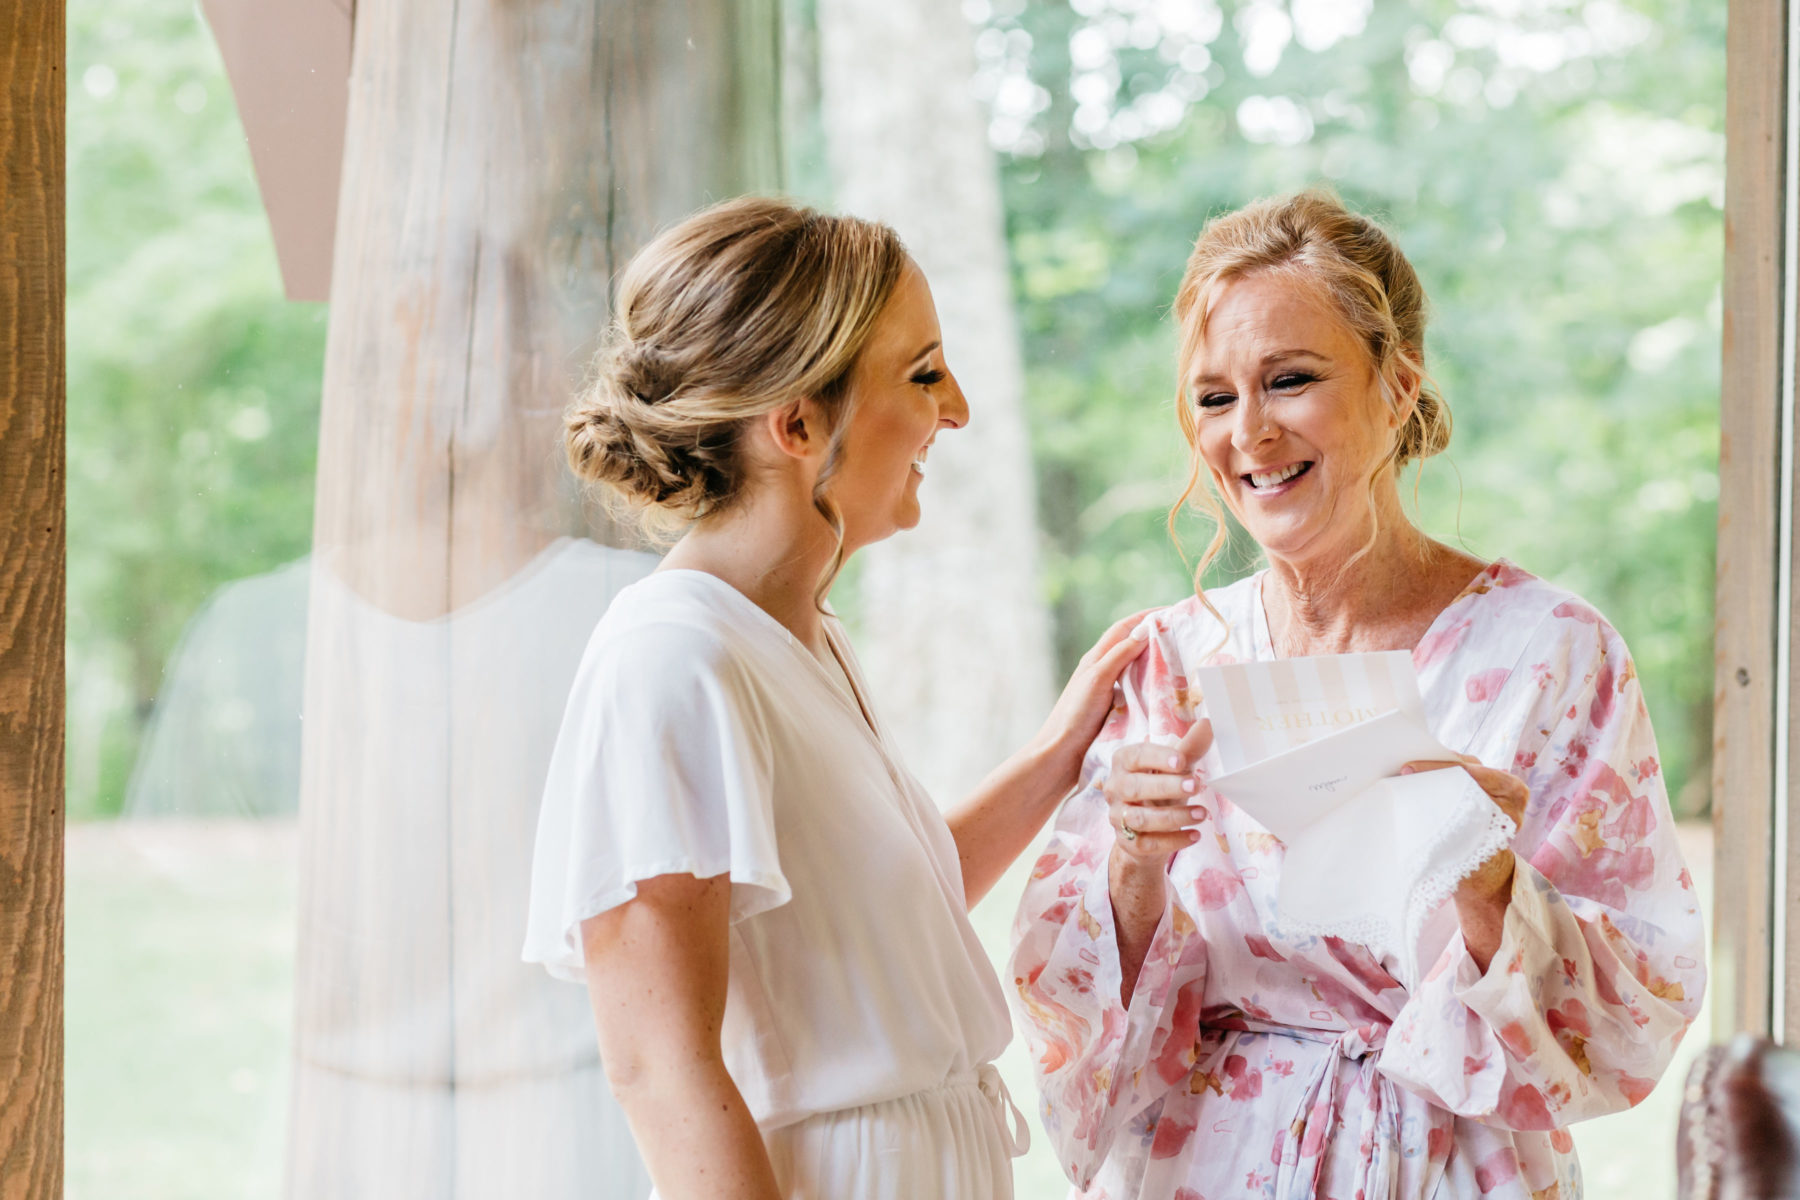 Mother/daughter wedding photos: Rustic Front Porch Farms wedding featured on Nashville Bride Guide